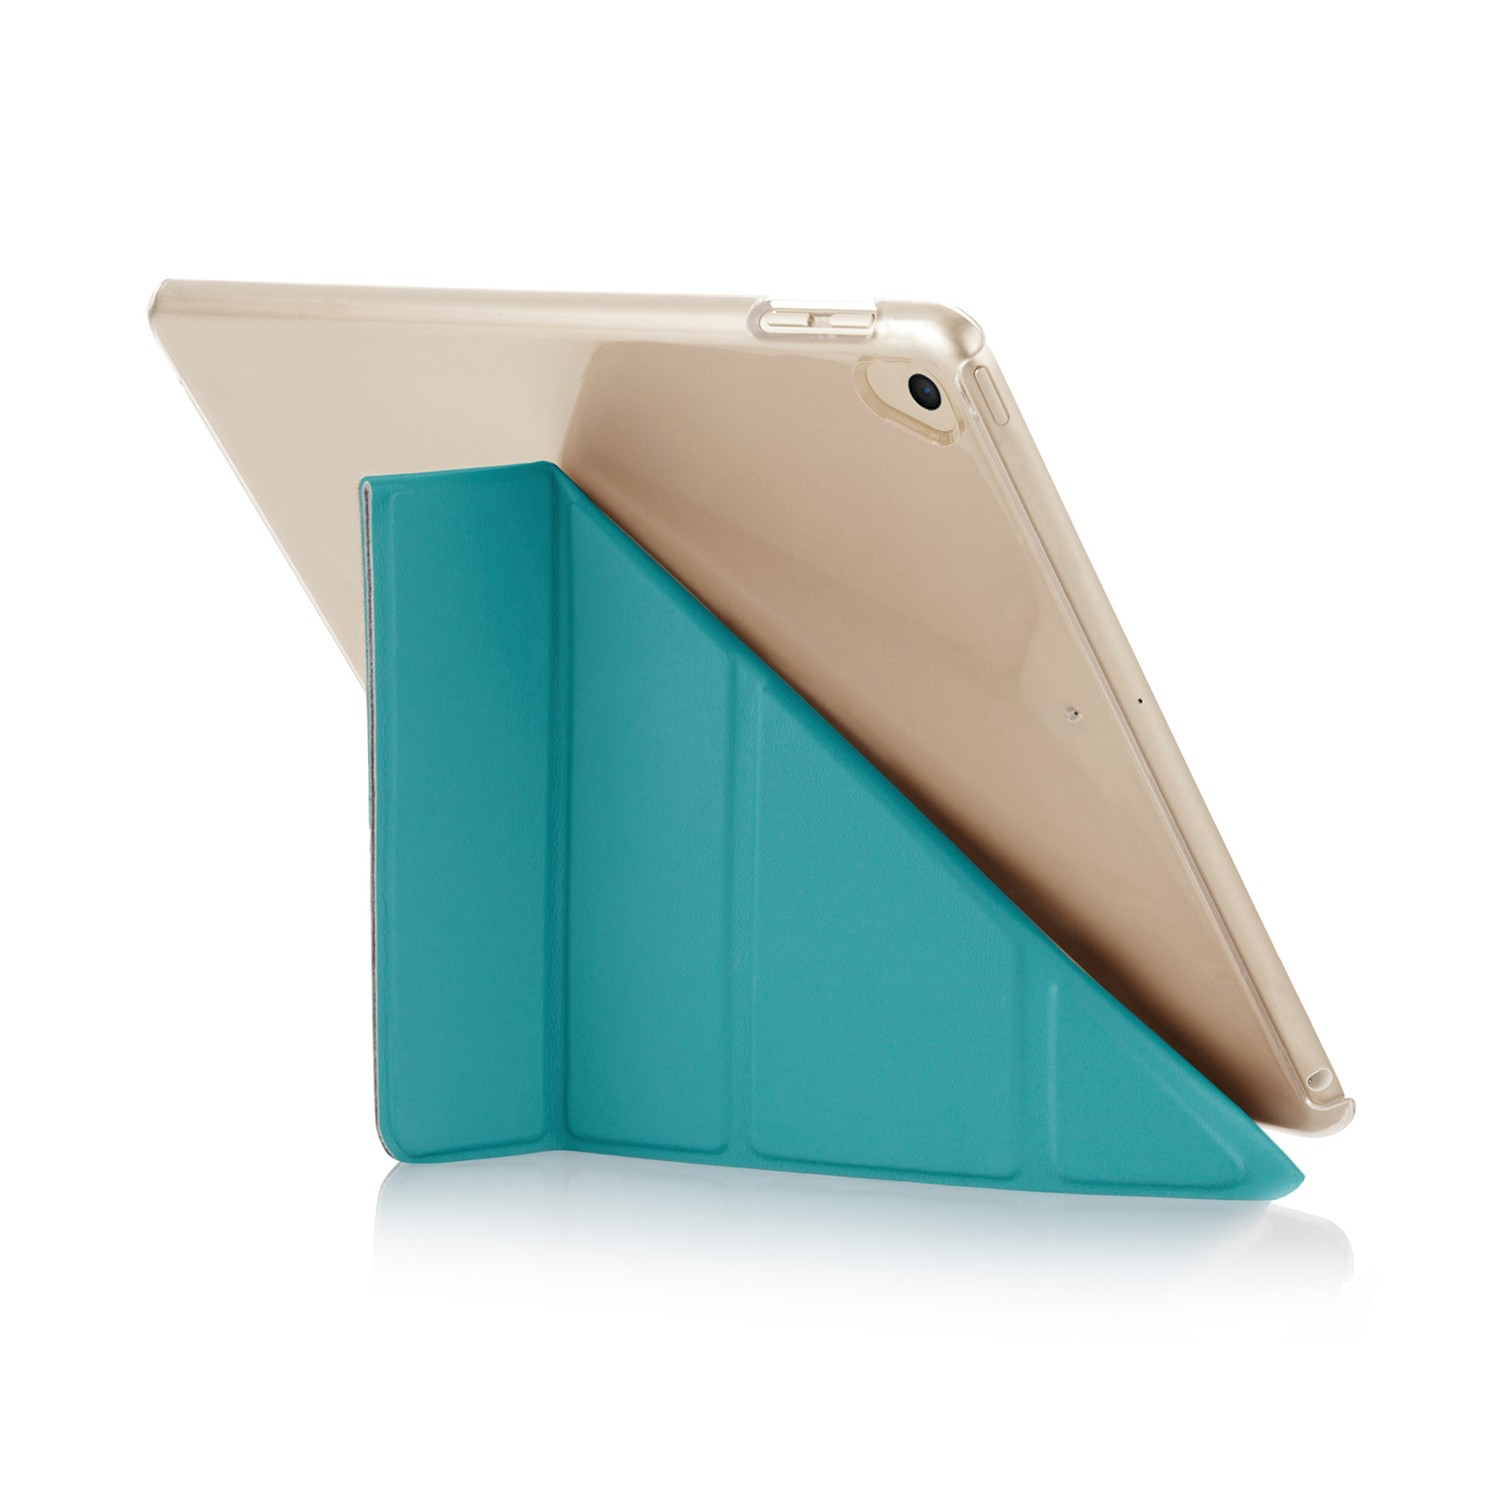 iPad Air 2 BlueLotus Origami Style Cross Texture Premium Leather ... | 1500x1500